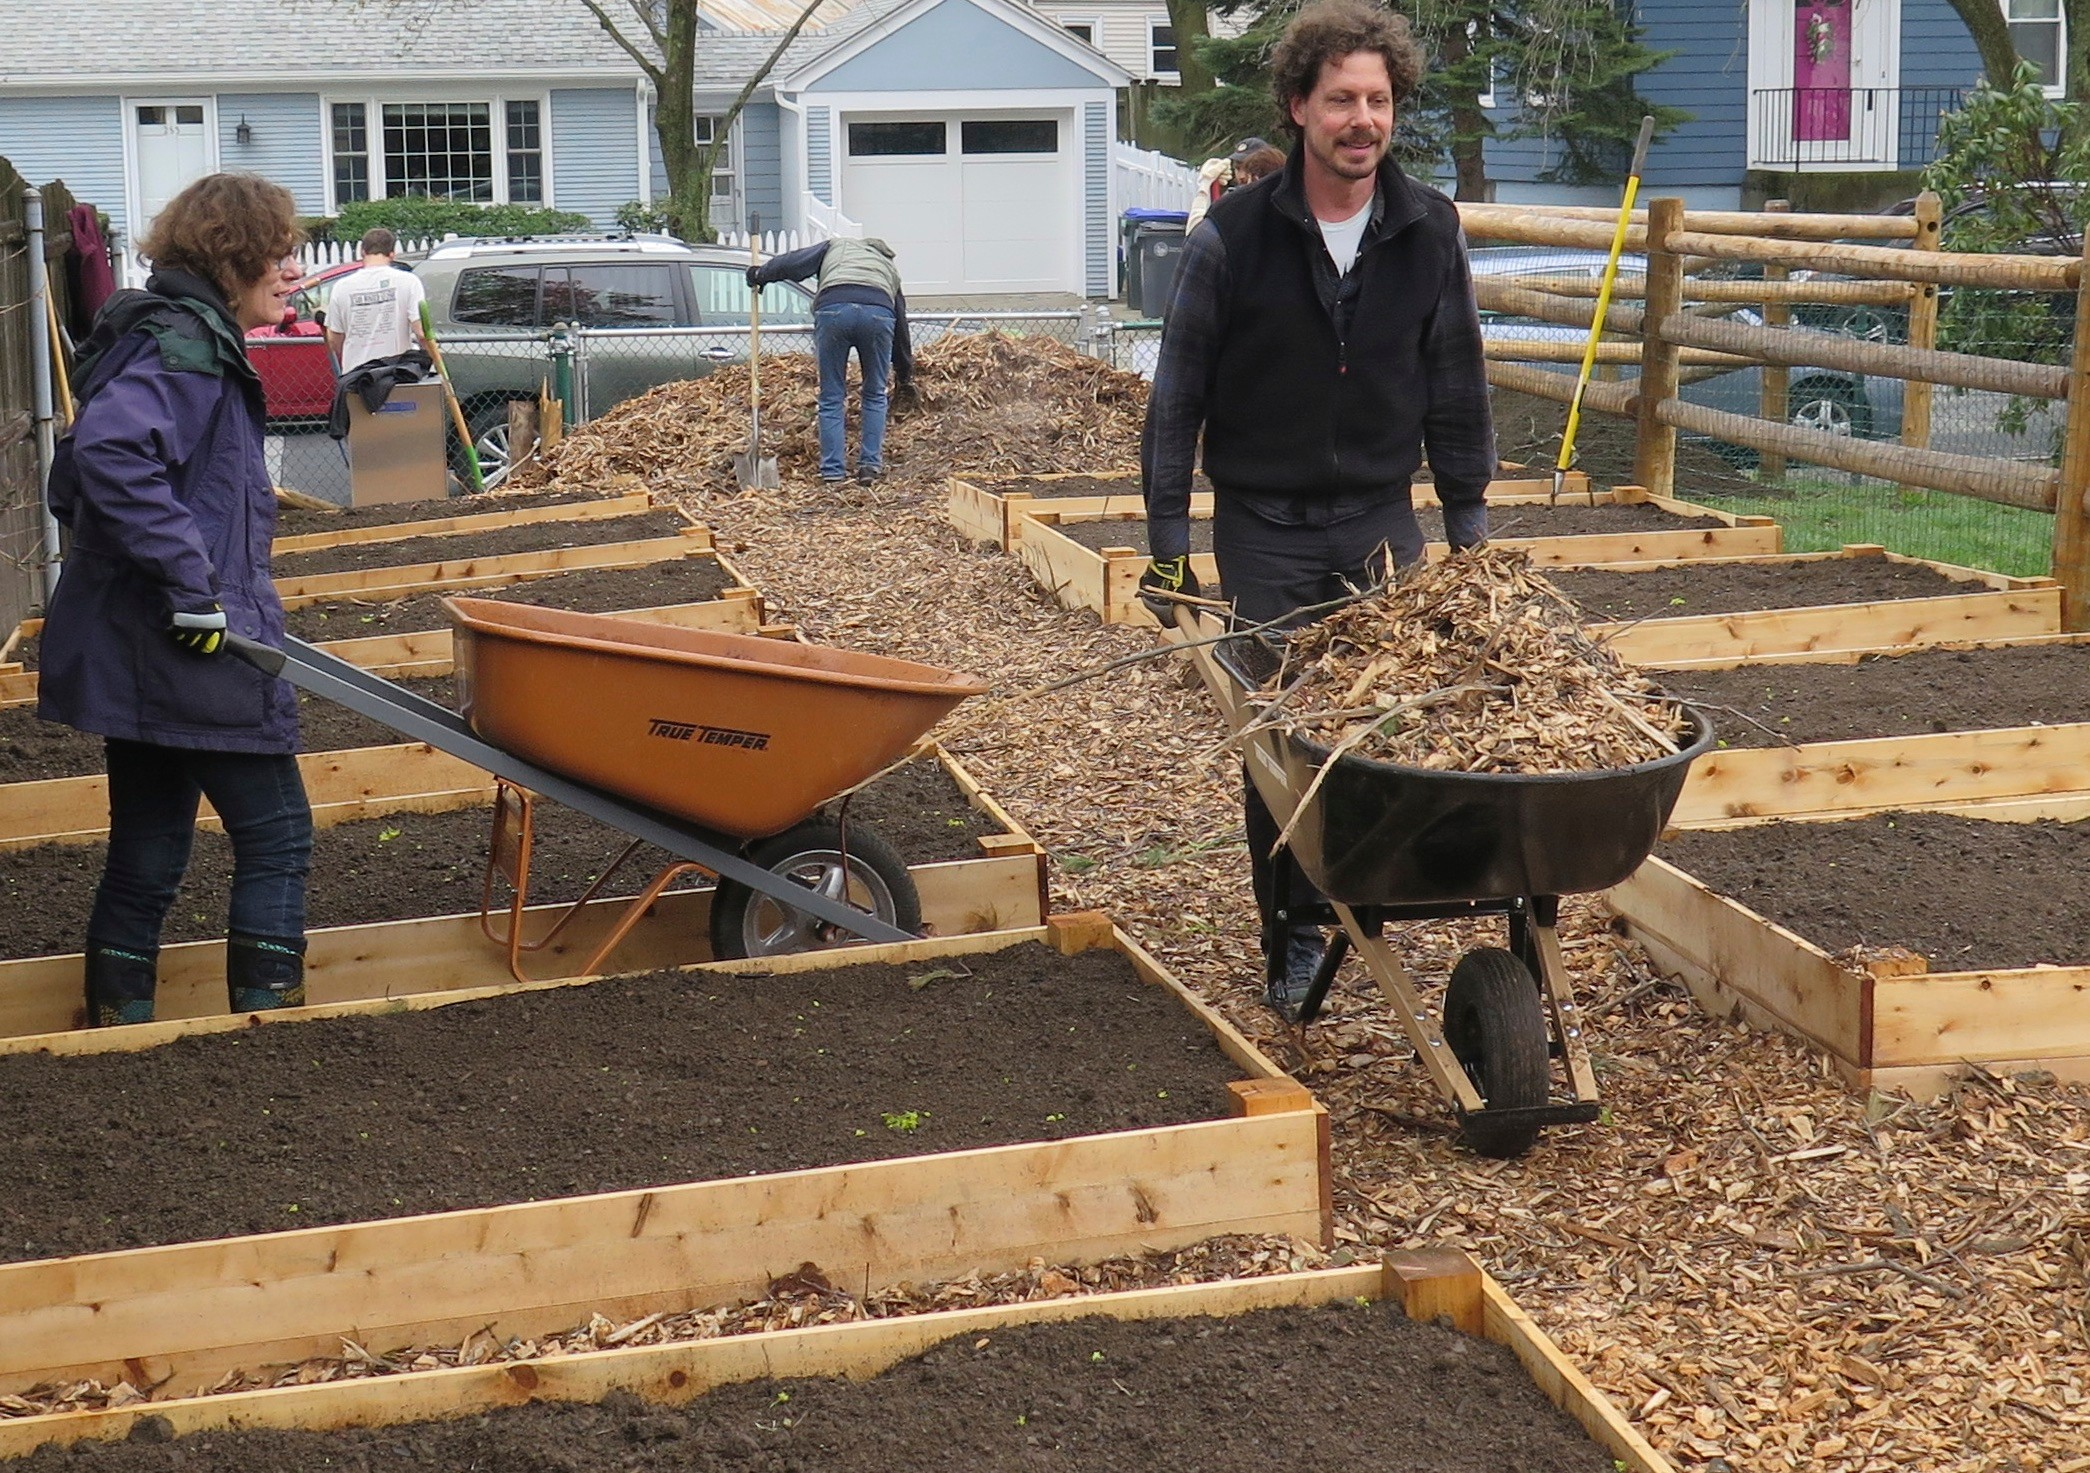 Wheelbarrows and muscles spread mulch between the raised beds of the Summit Neighborhood Community Gardens on April 22, Earth Day.